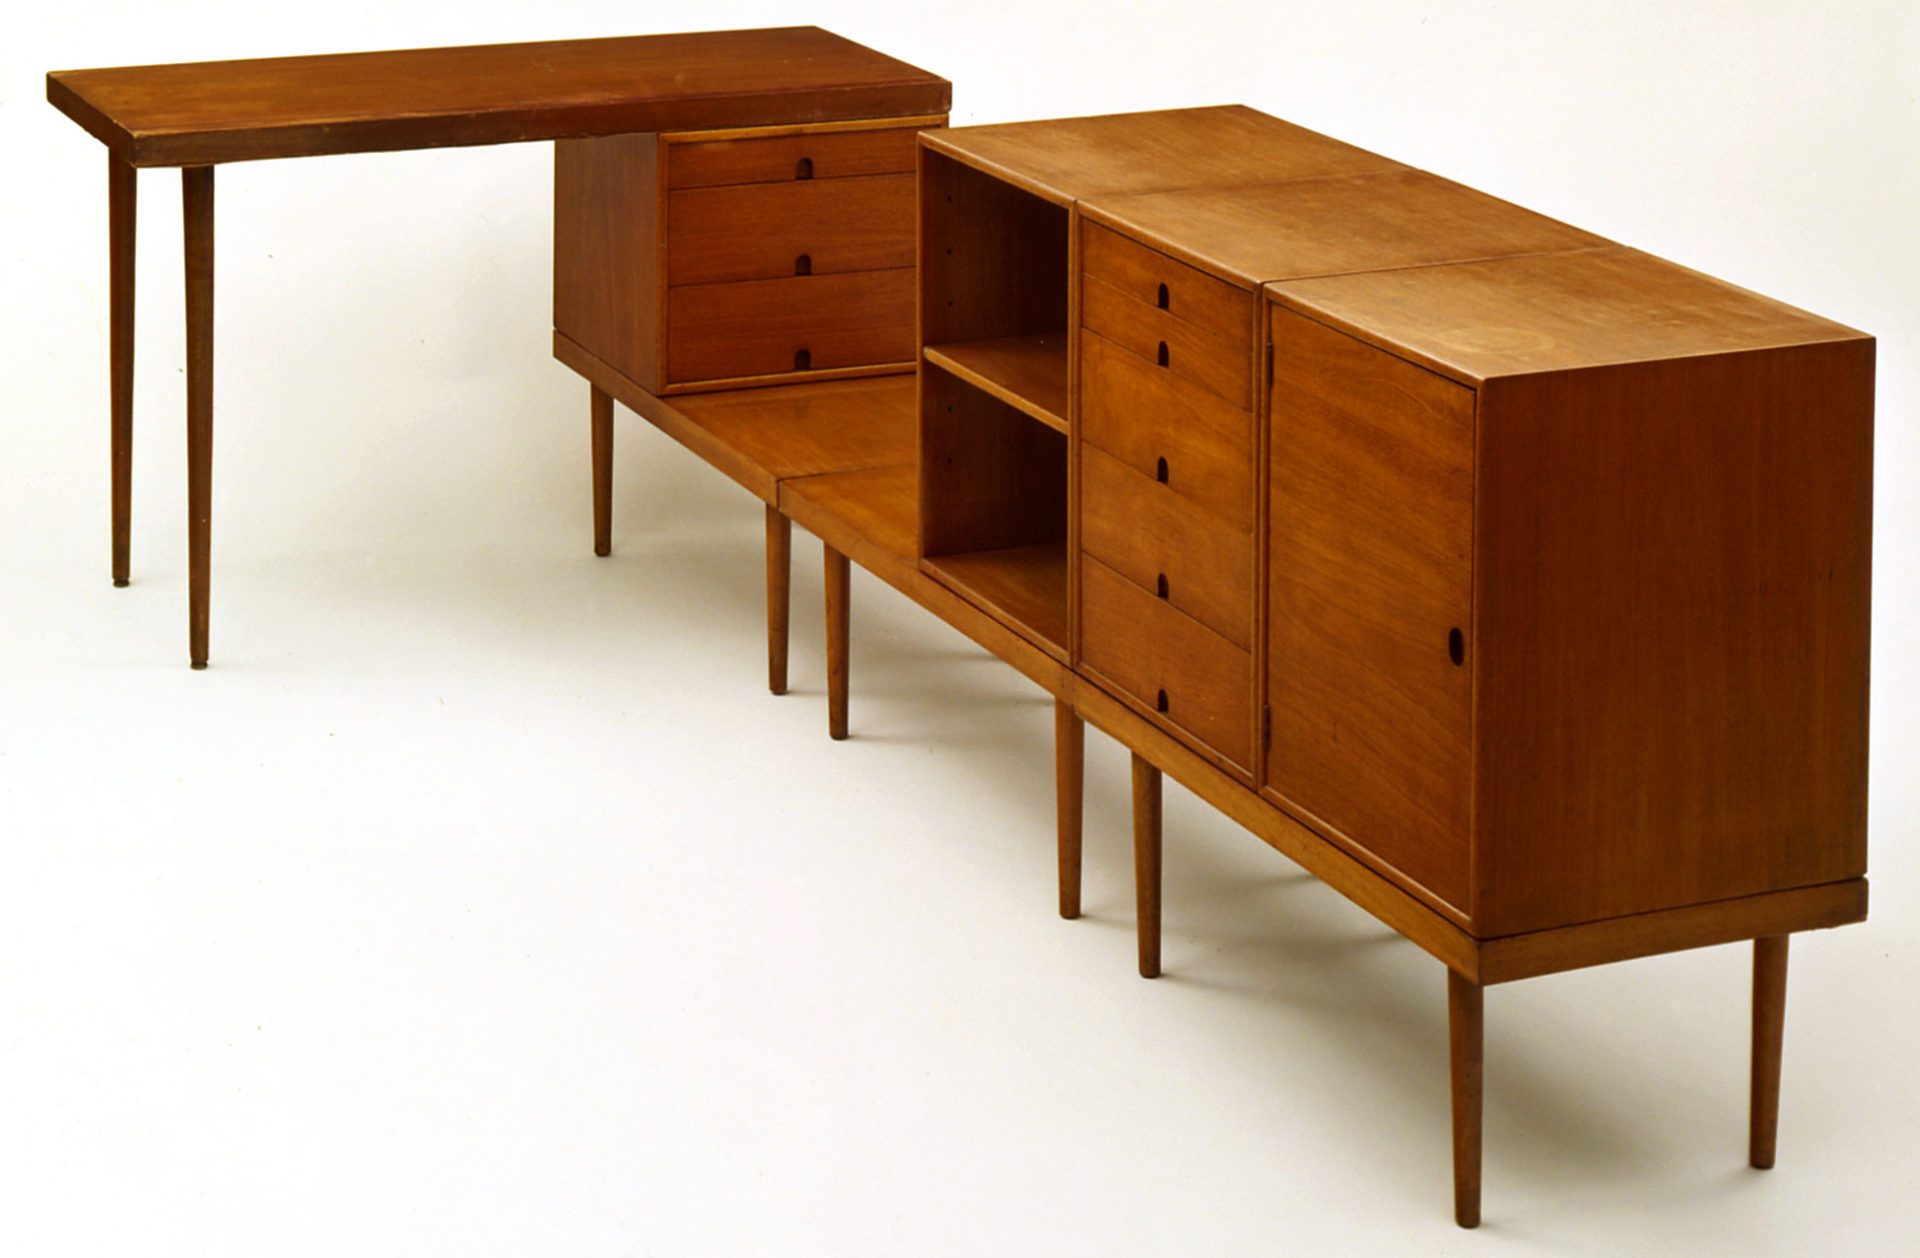 Set of modular shelves, drawers, cabinets and table surfaces in wood.